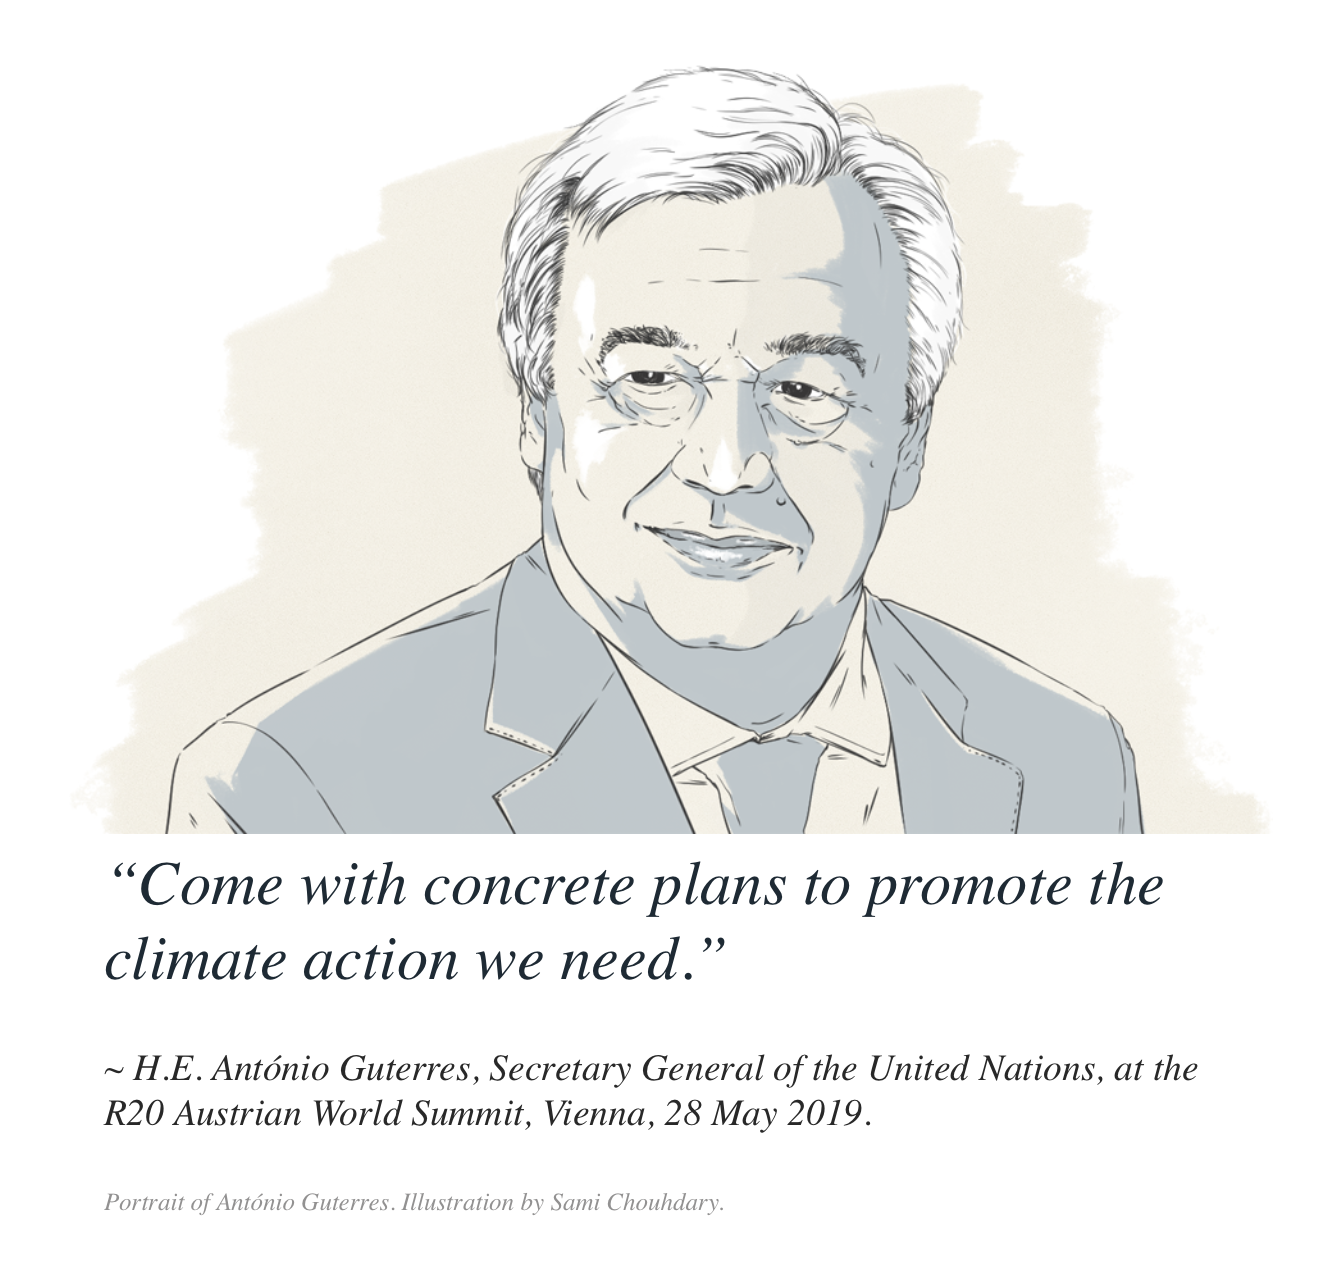 Quote by H.E. António Guterres